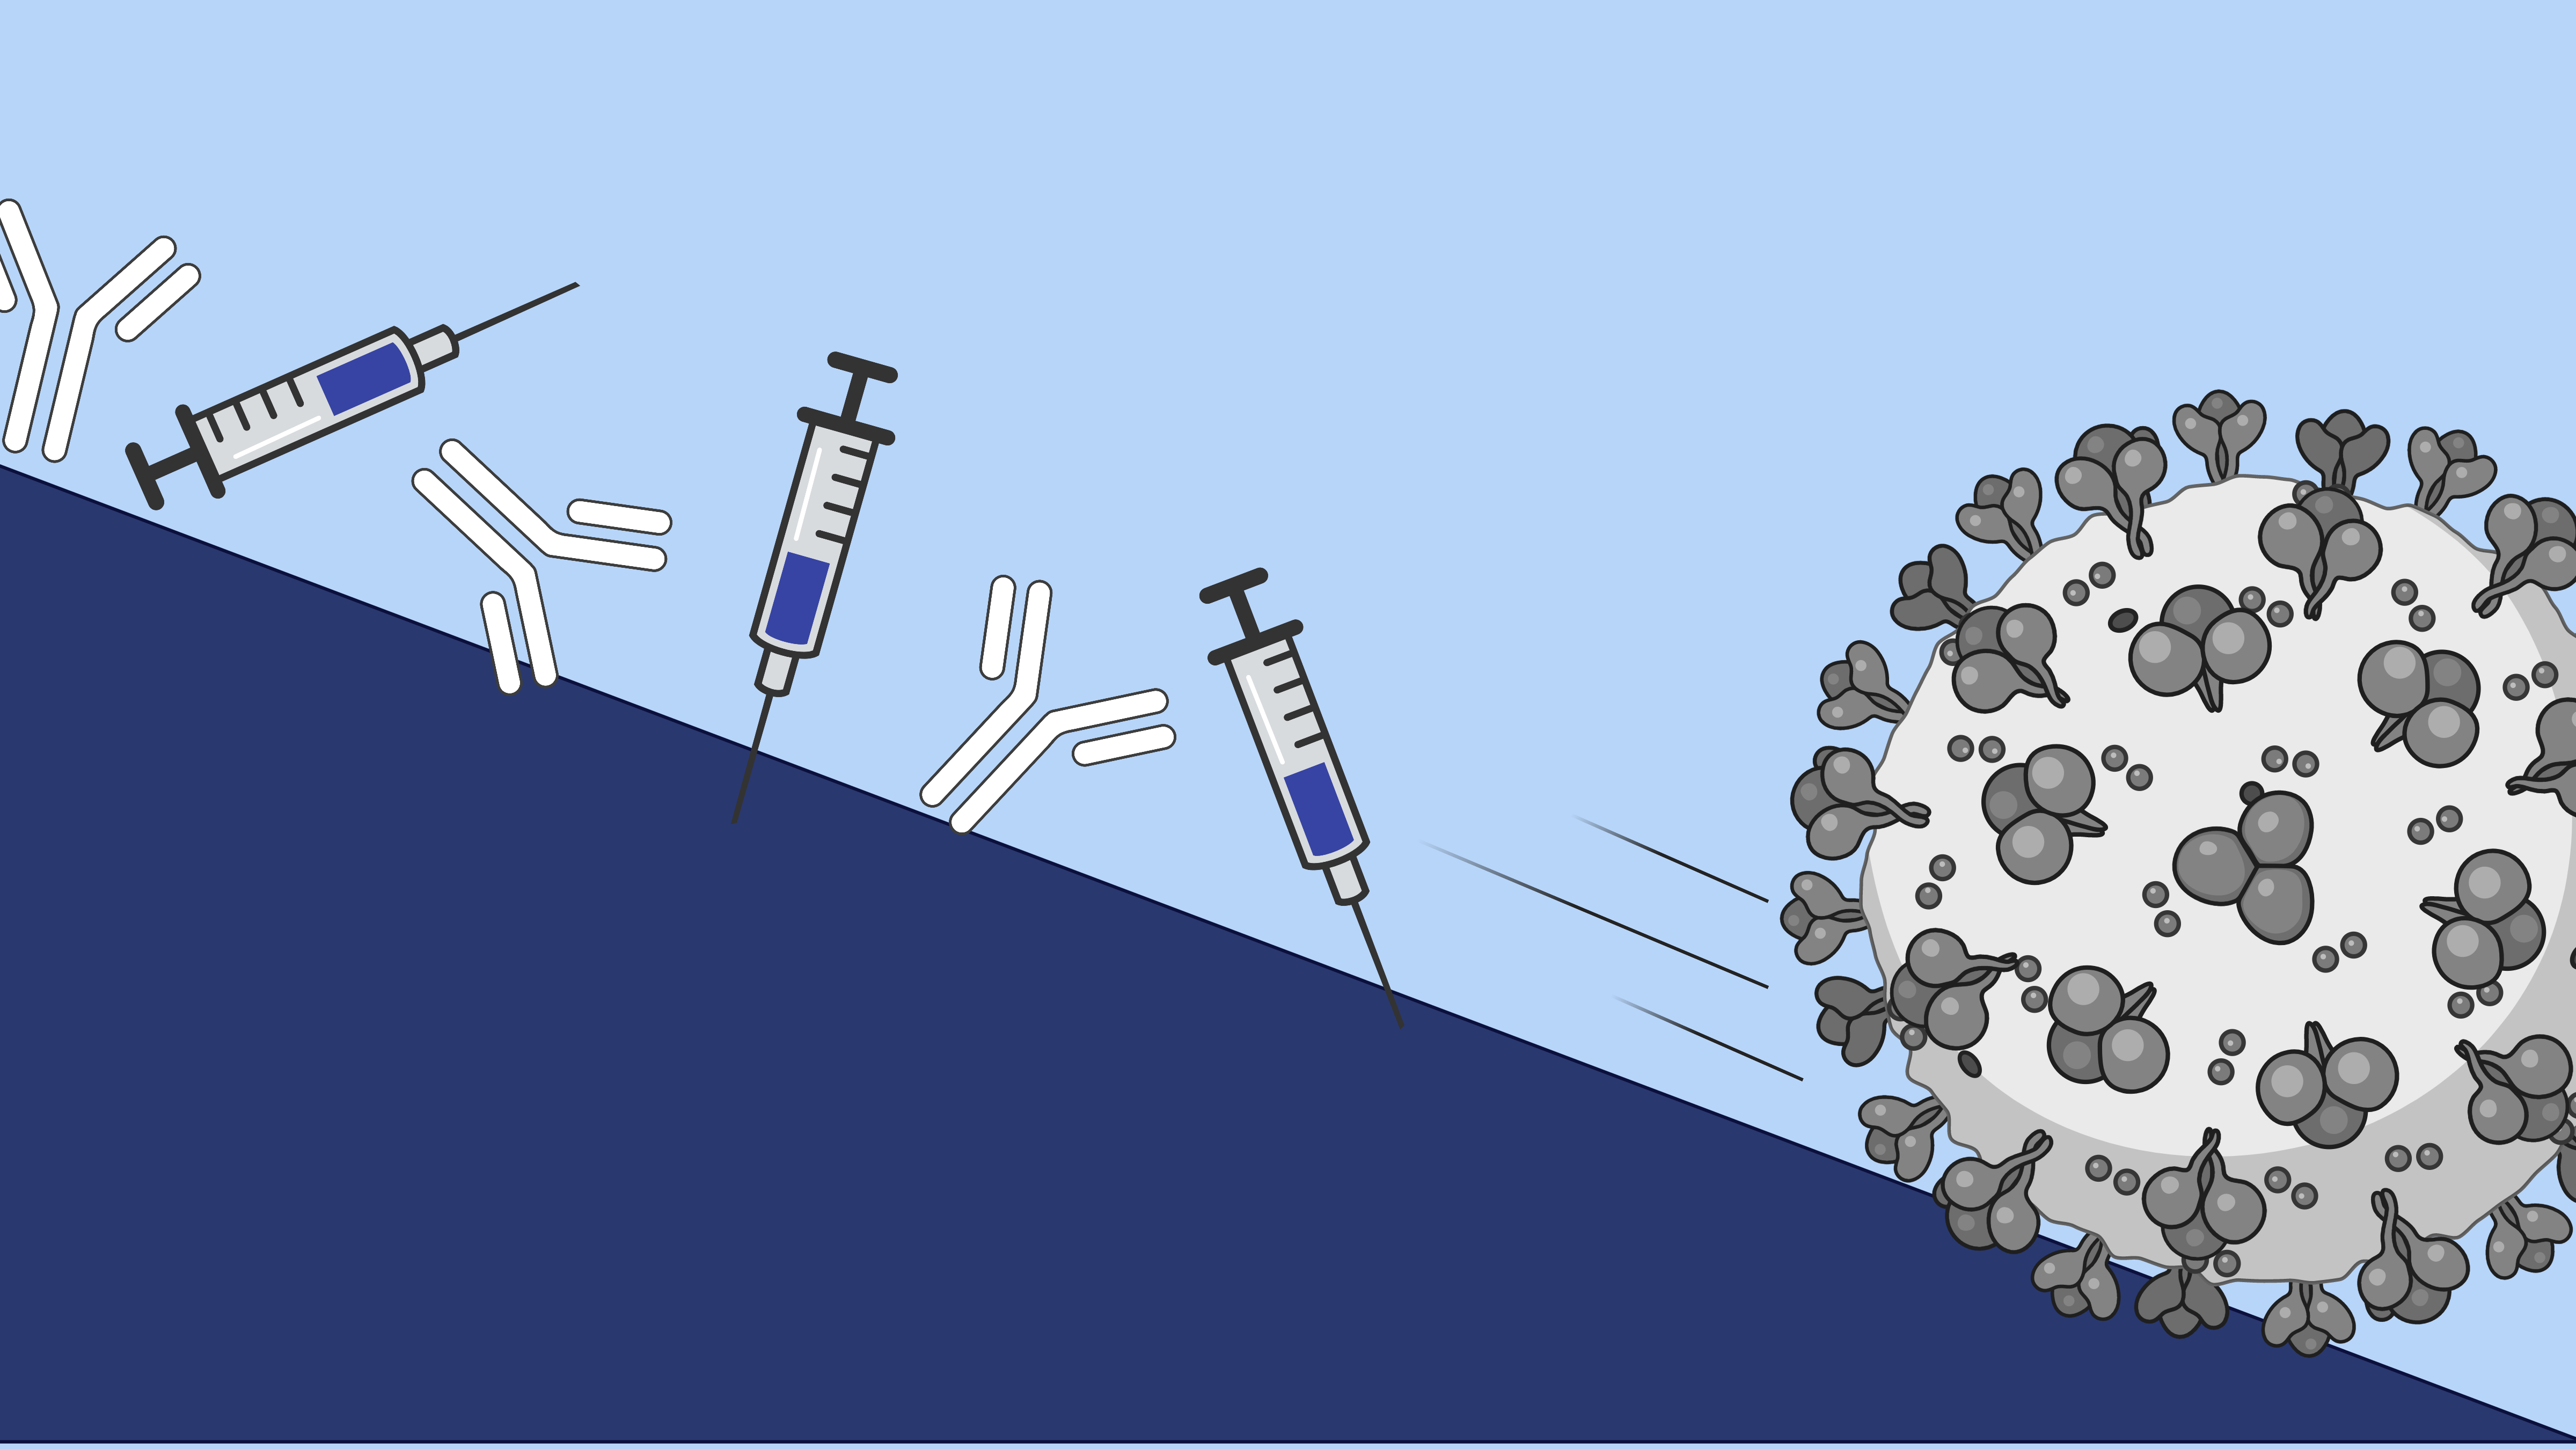 SARS-CoV-2 is changing. What does that mean for vaccines and treatments? By Taylor Engdahl